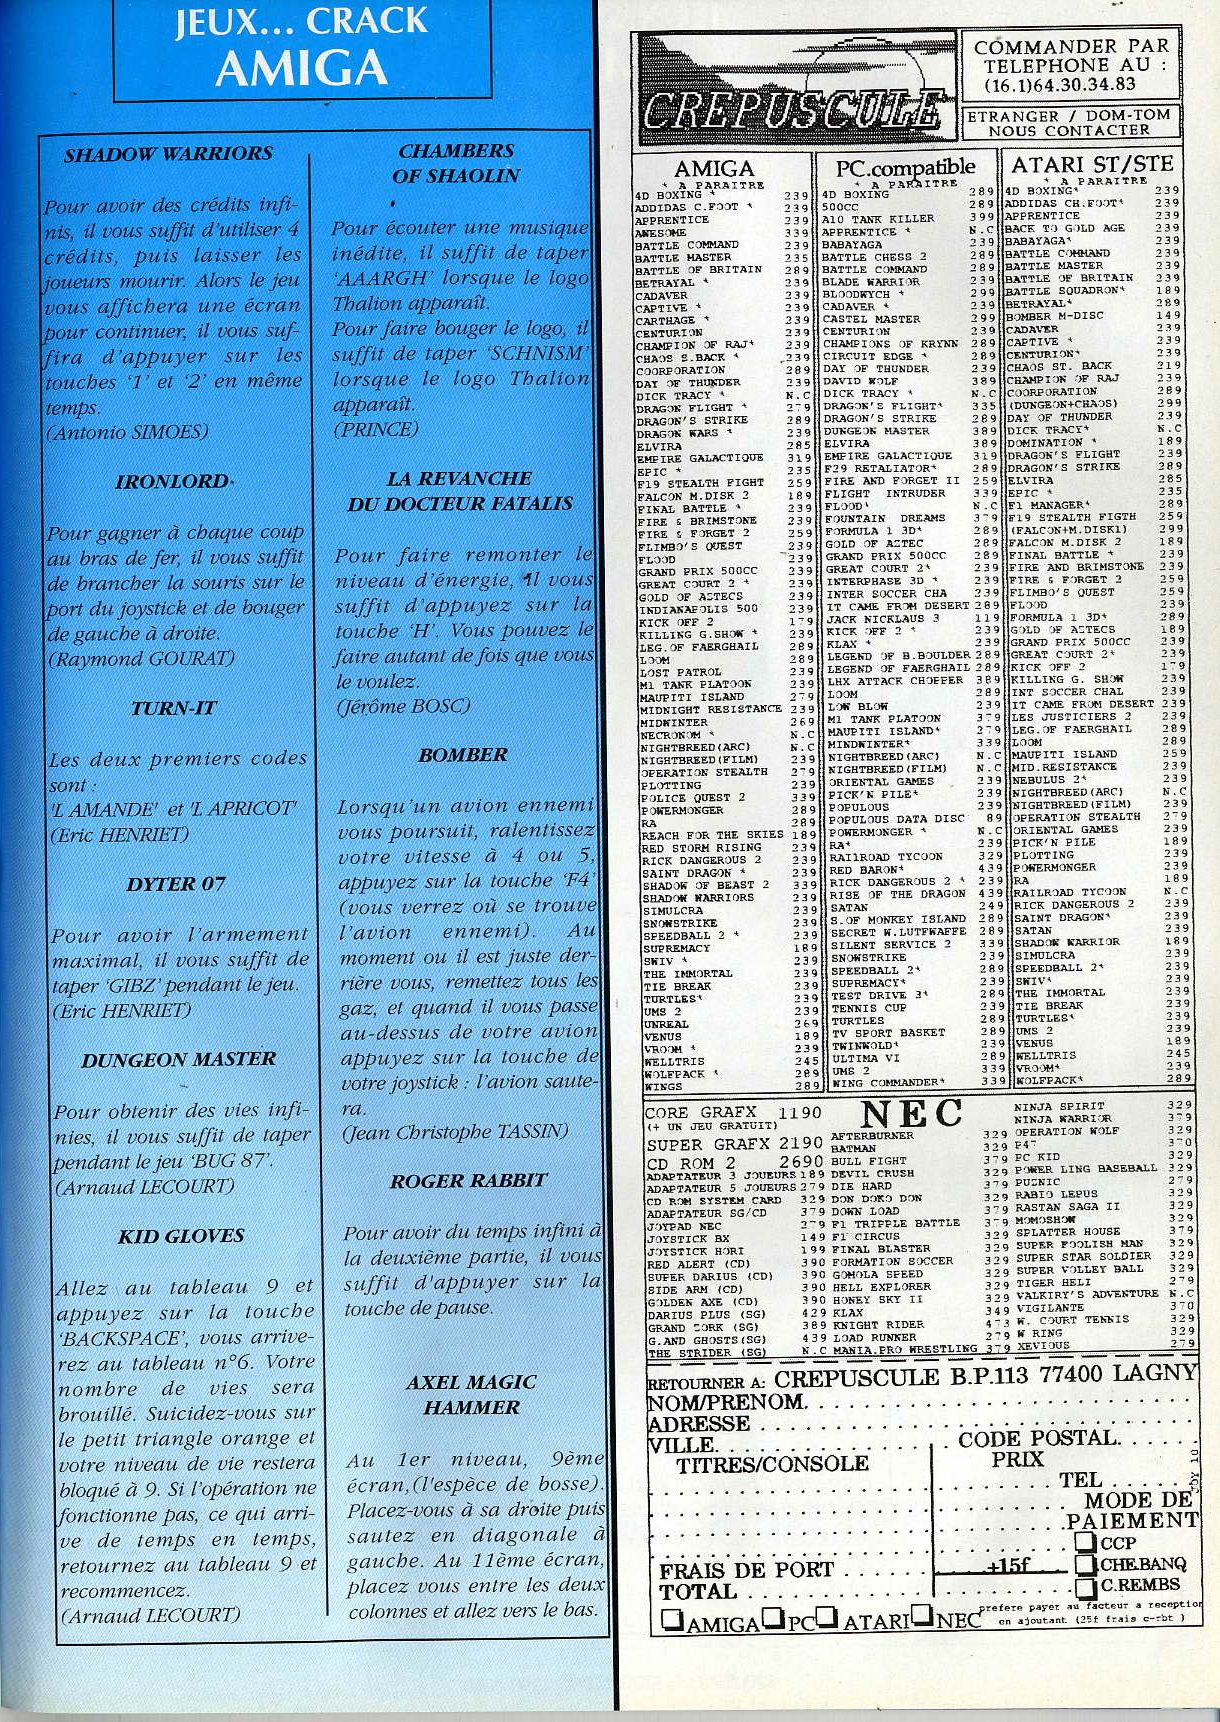 Dungeon Master for Amiga Fake DM Cheat published in French magazine 'Joystick', Issue #10 November 1990, Page 165